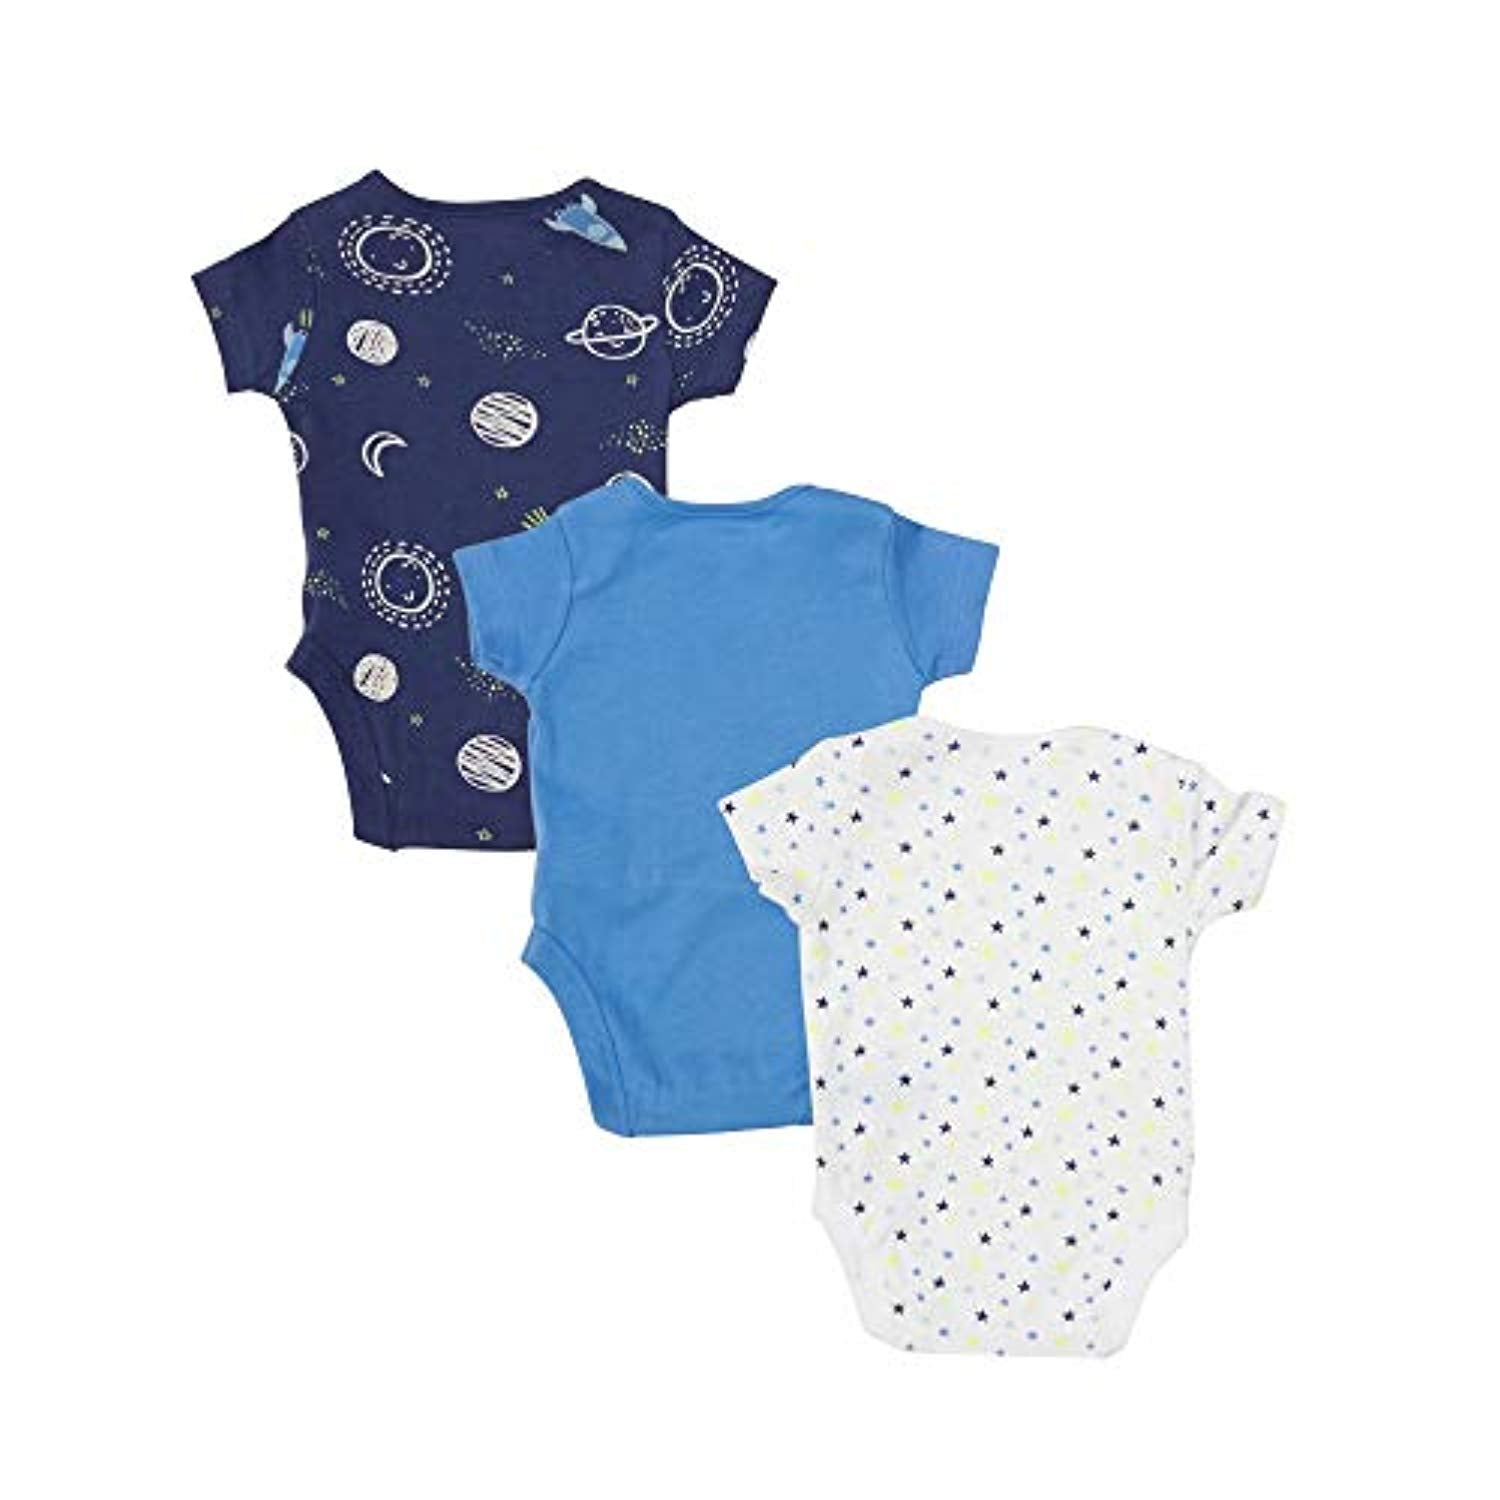 Mothercare 3PK Pure Cotton bodysuits for baby boys girls available in pink//blue